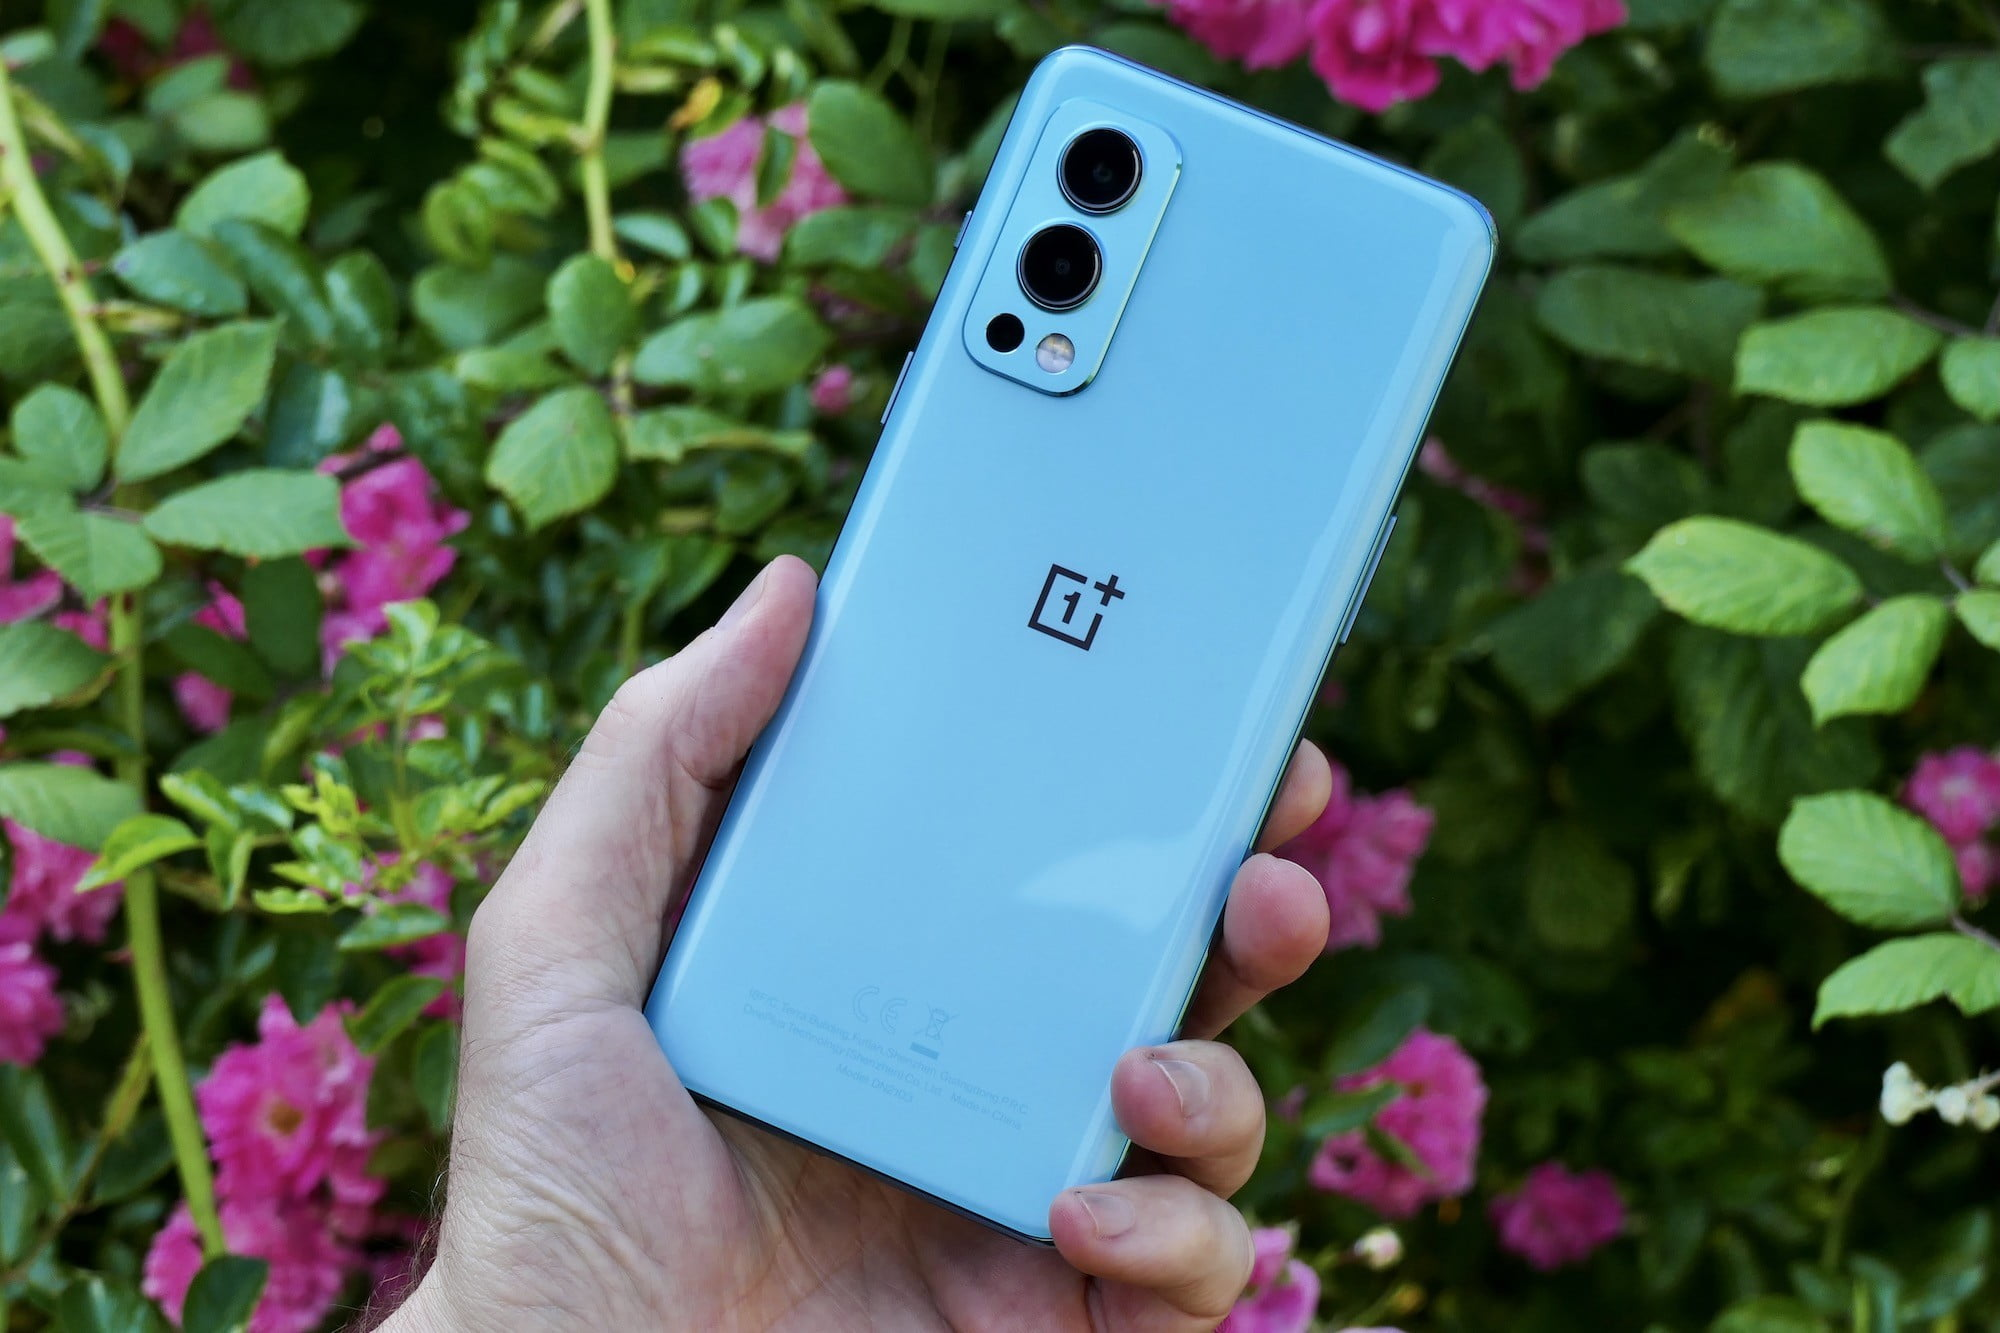 OnePlus Nord 2 5G review: Just call it the OnePlus 9 Lite